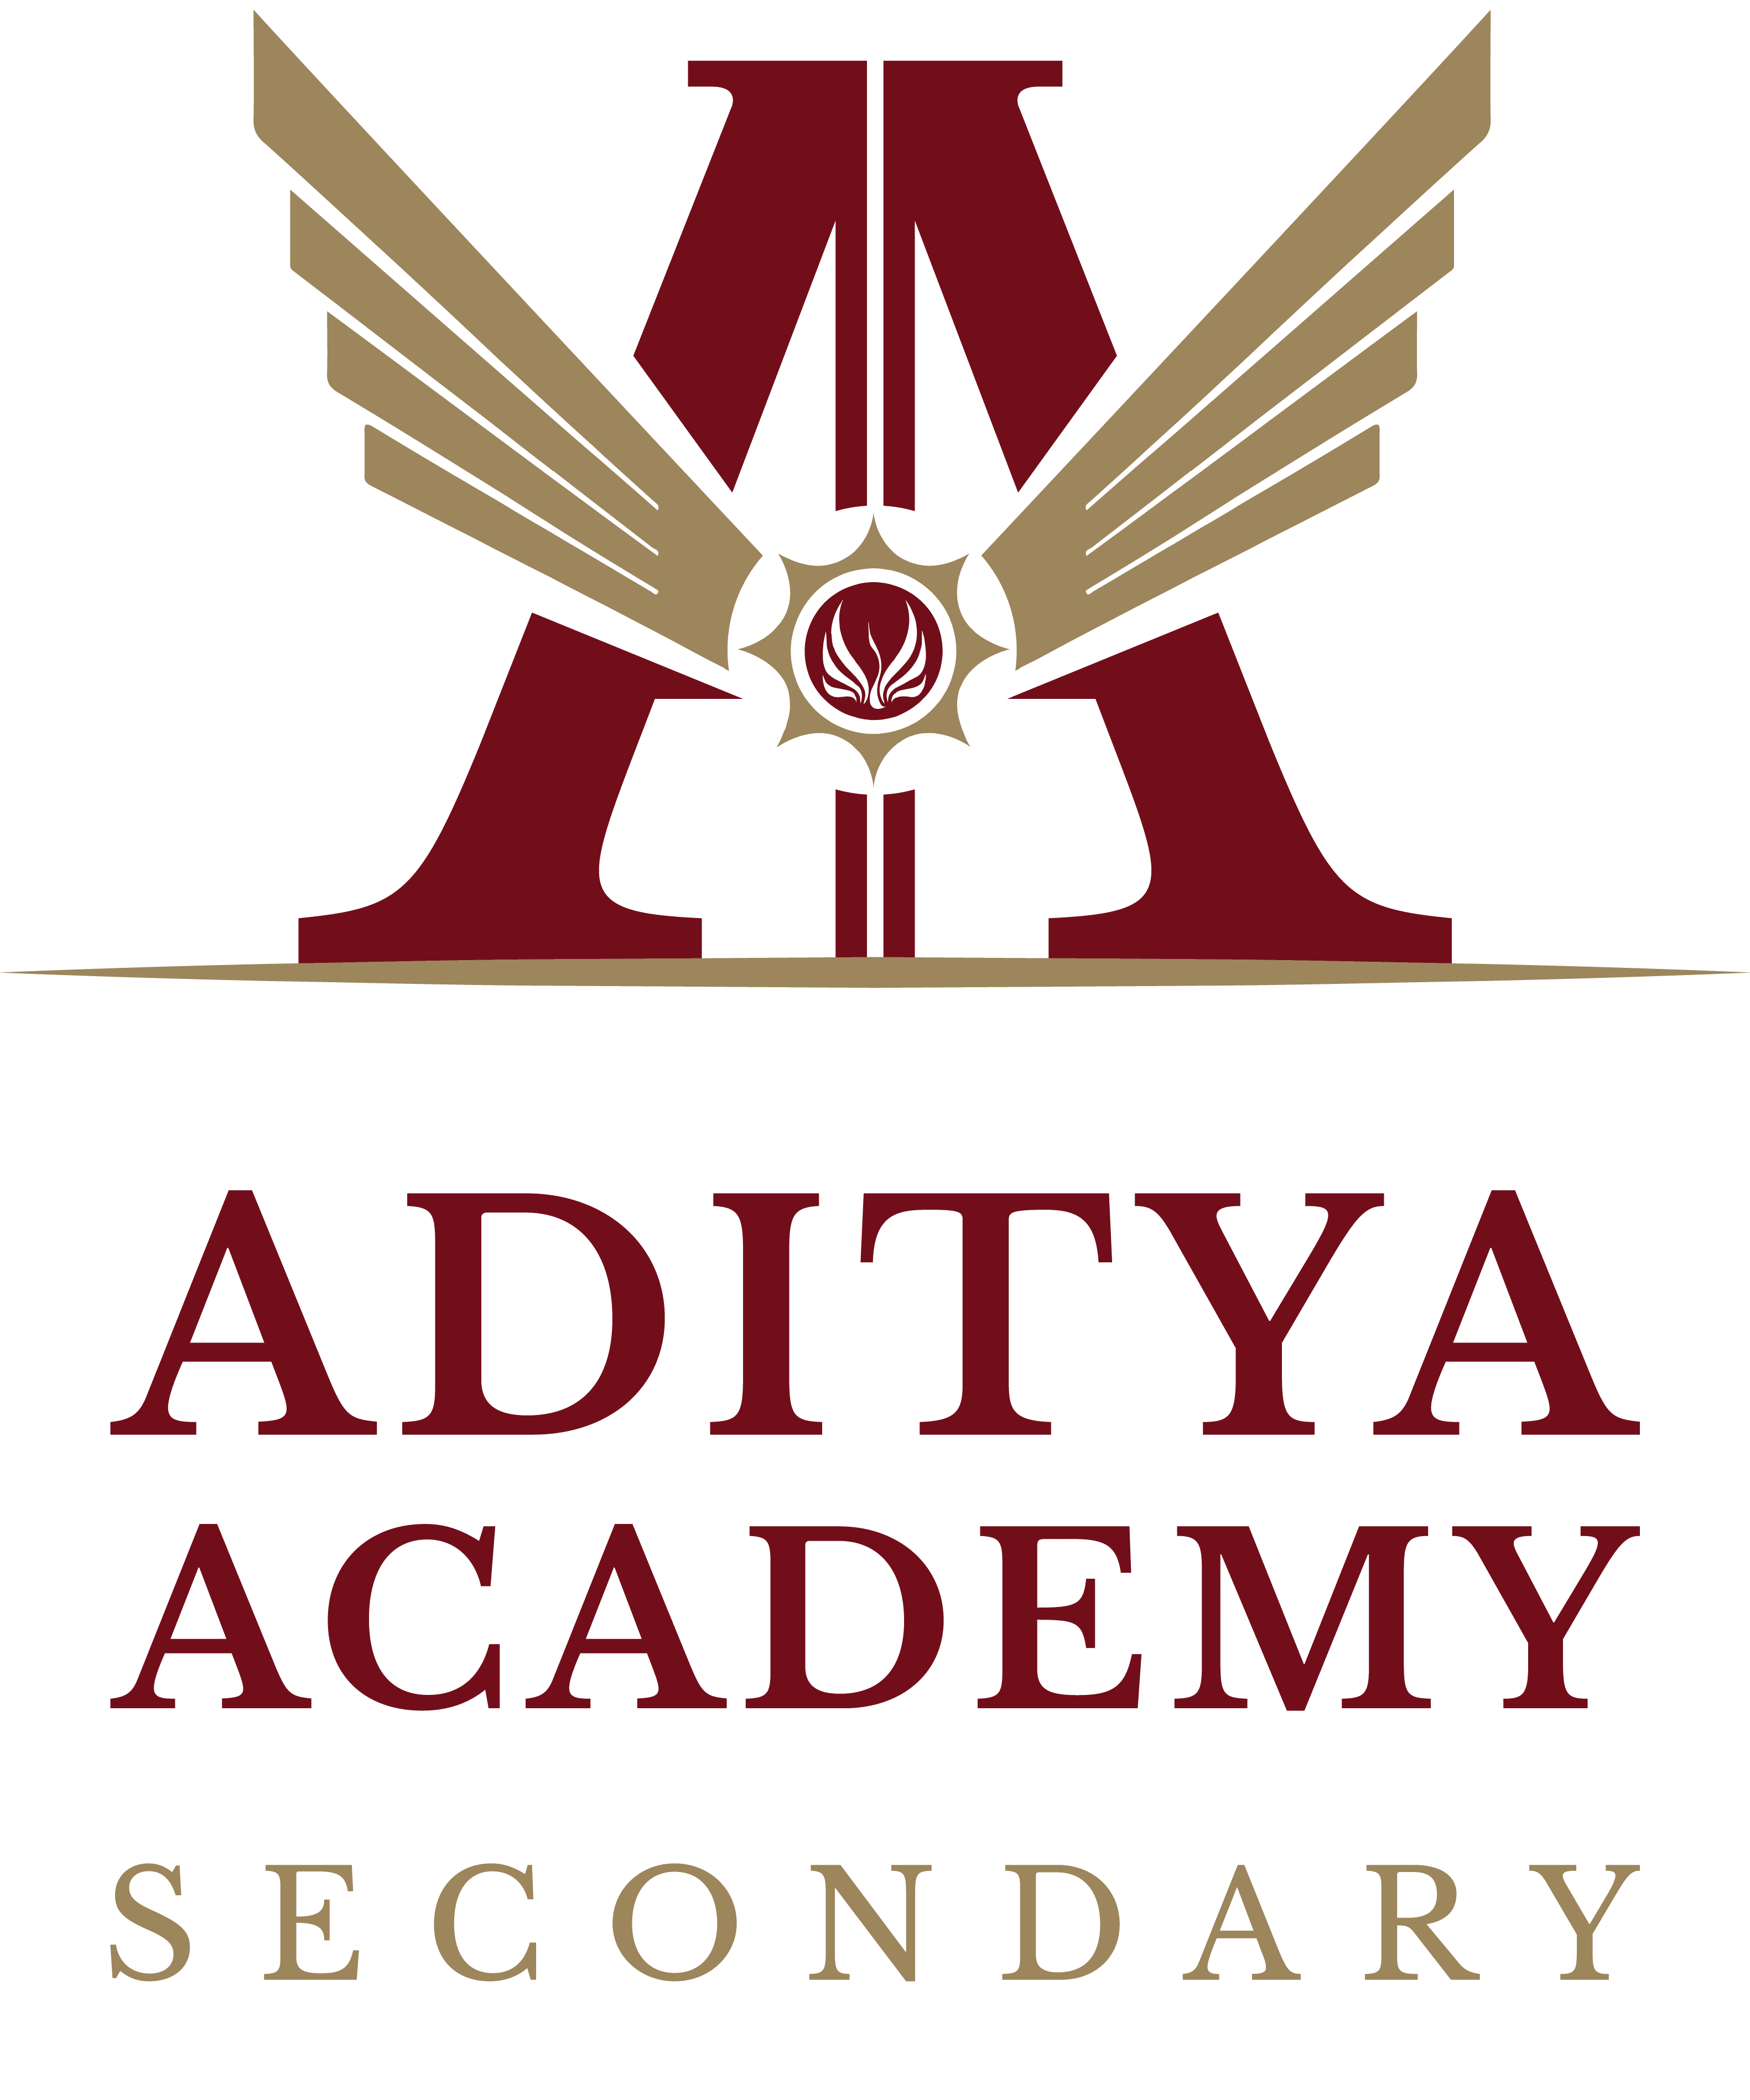 Aditya Academy Secondary